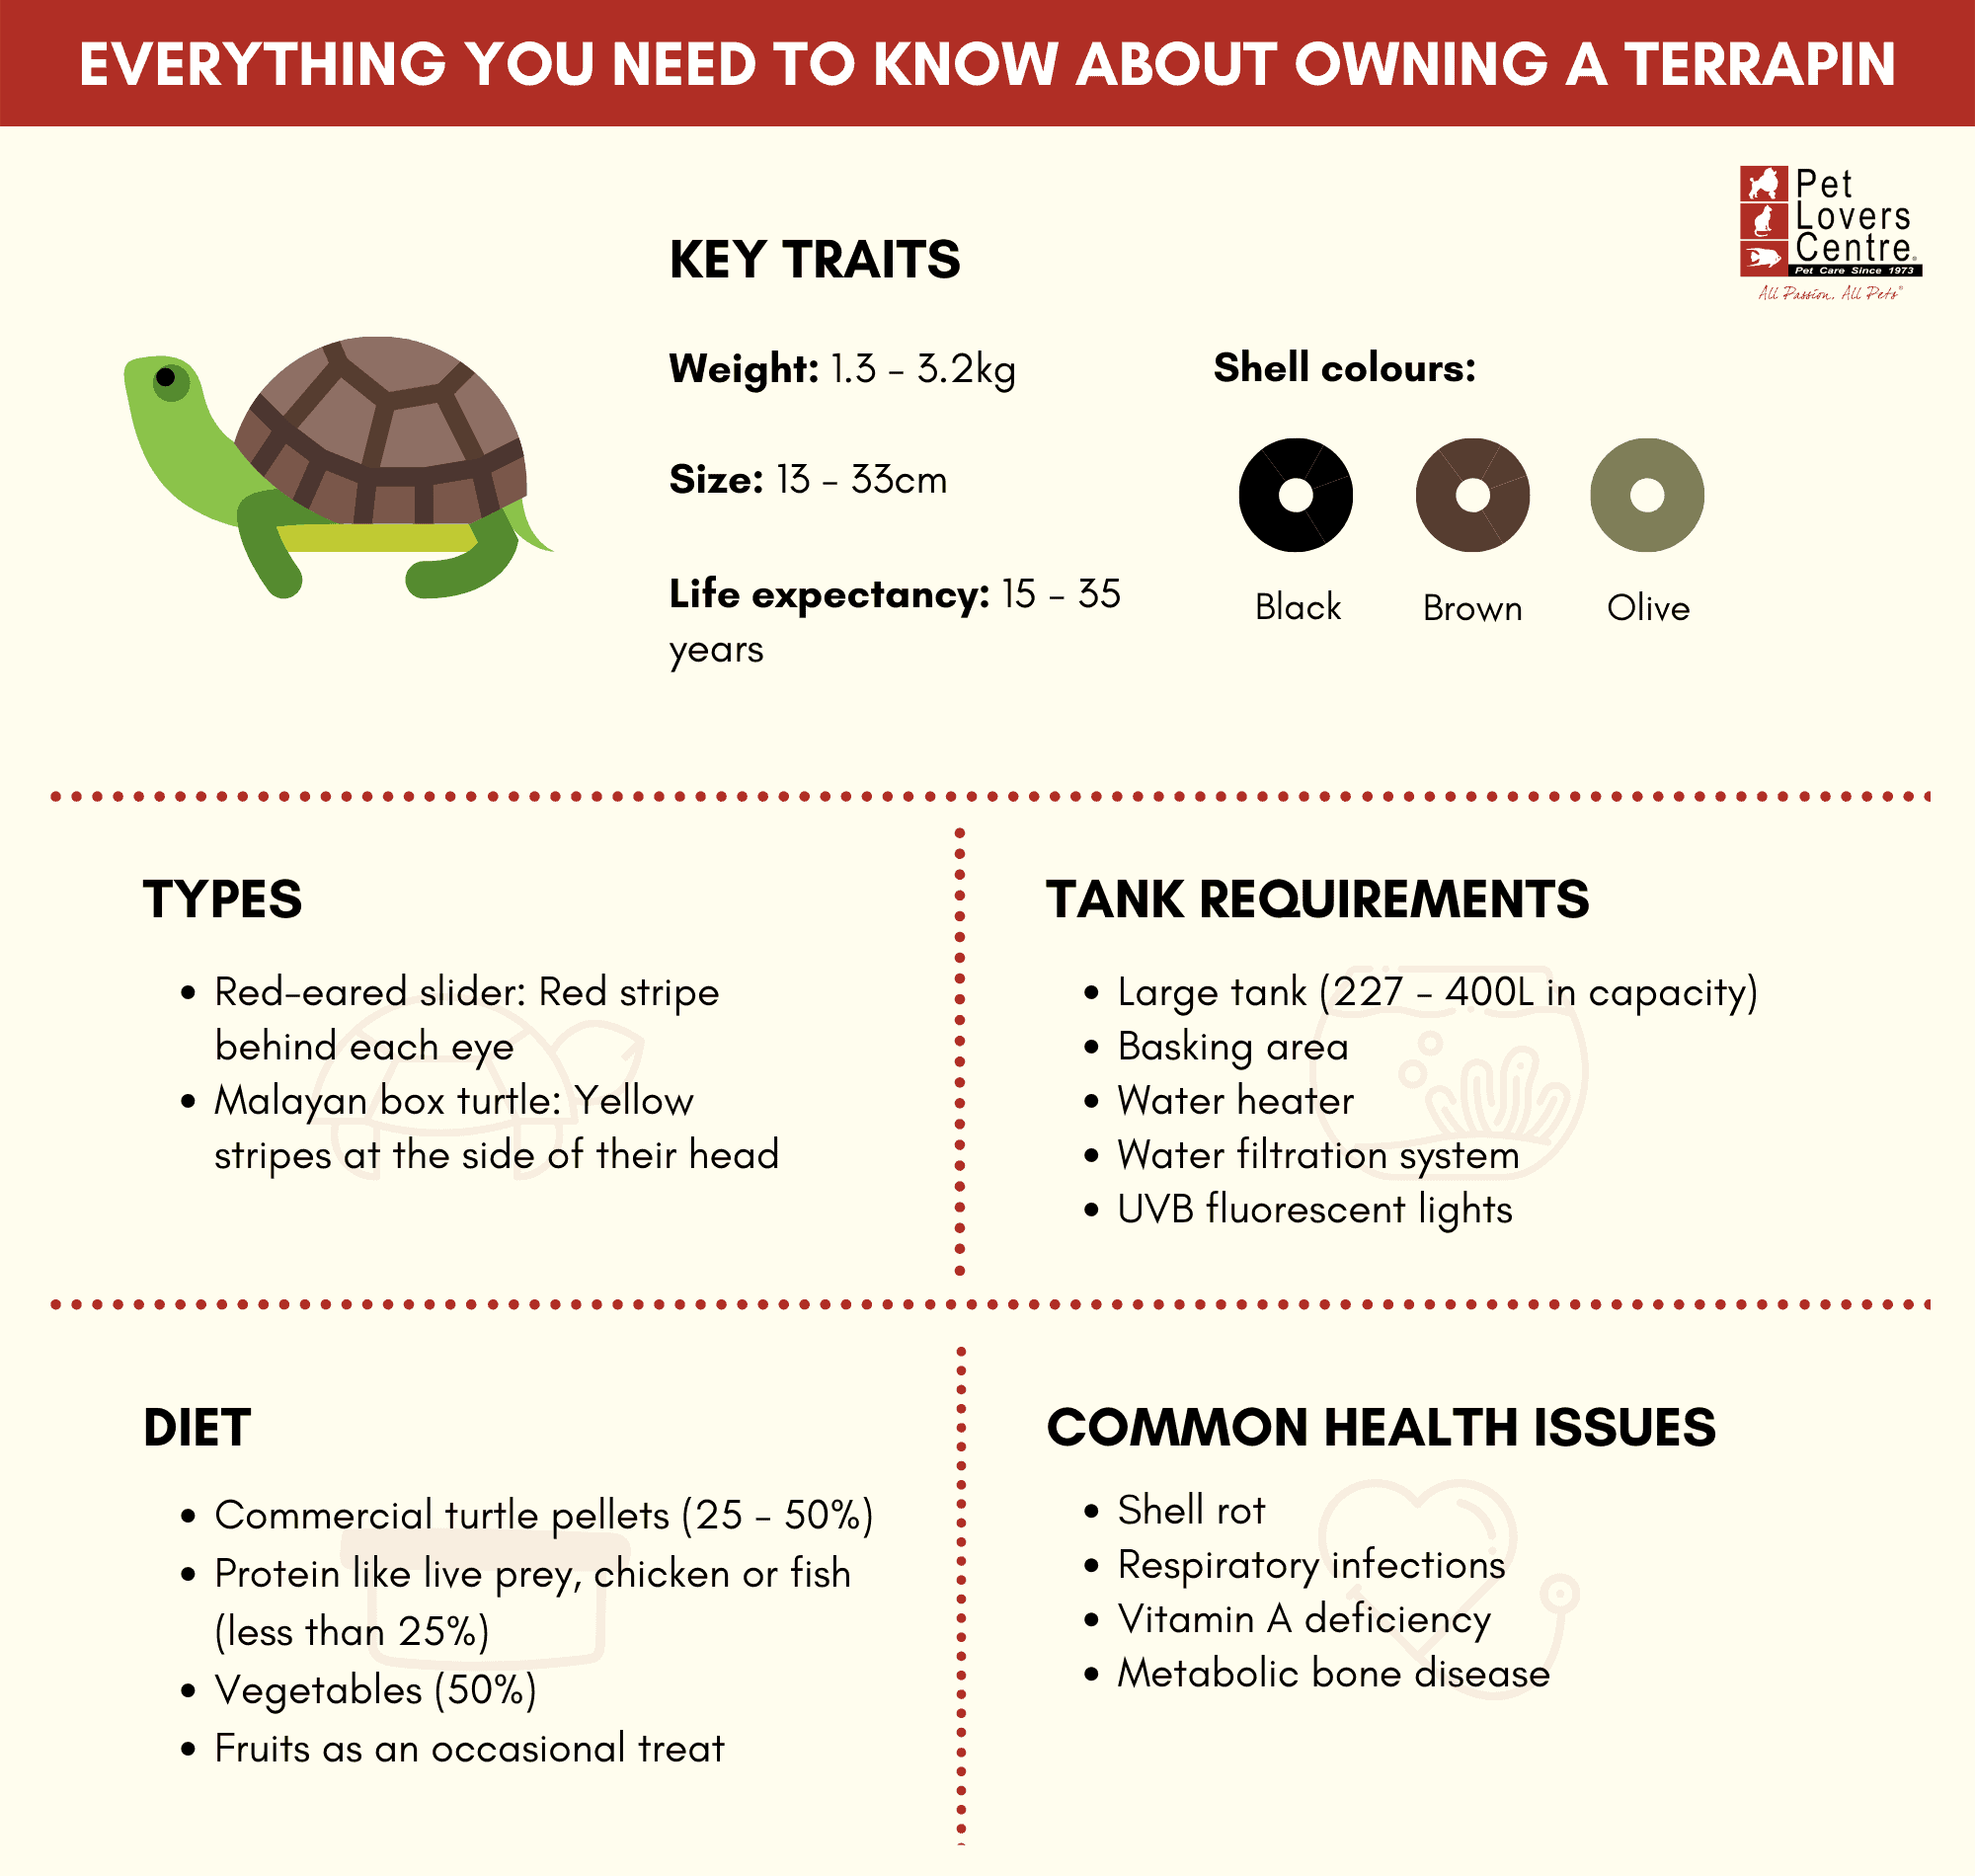 Infographic about caring for a terrapin in SIngapore